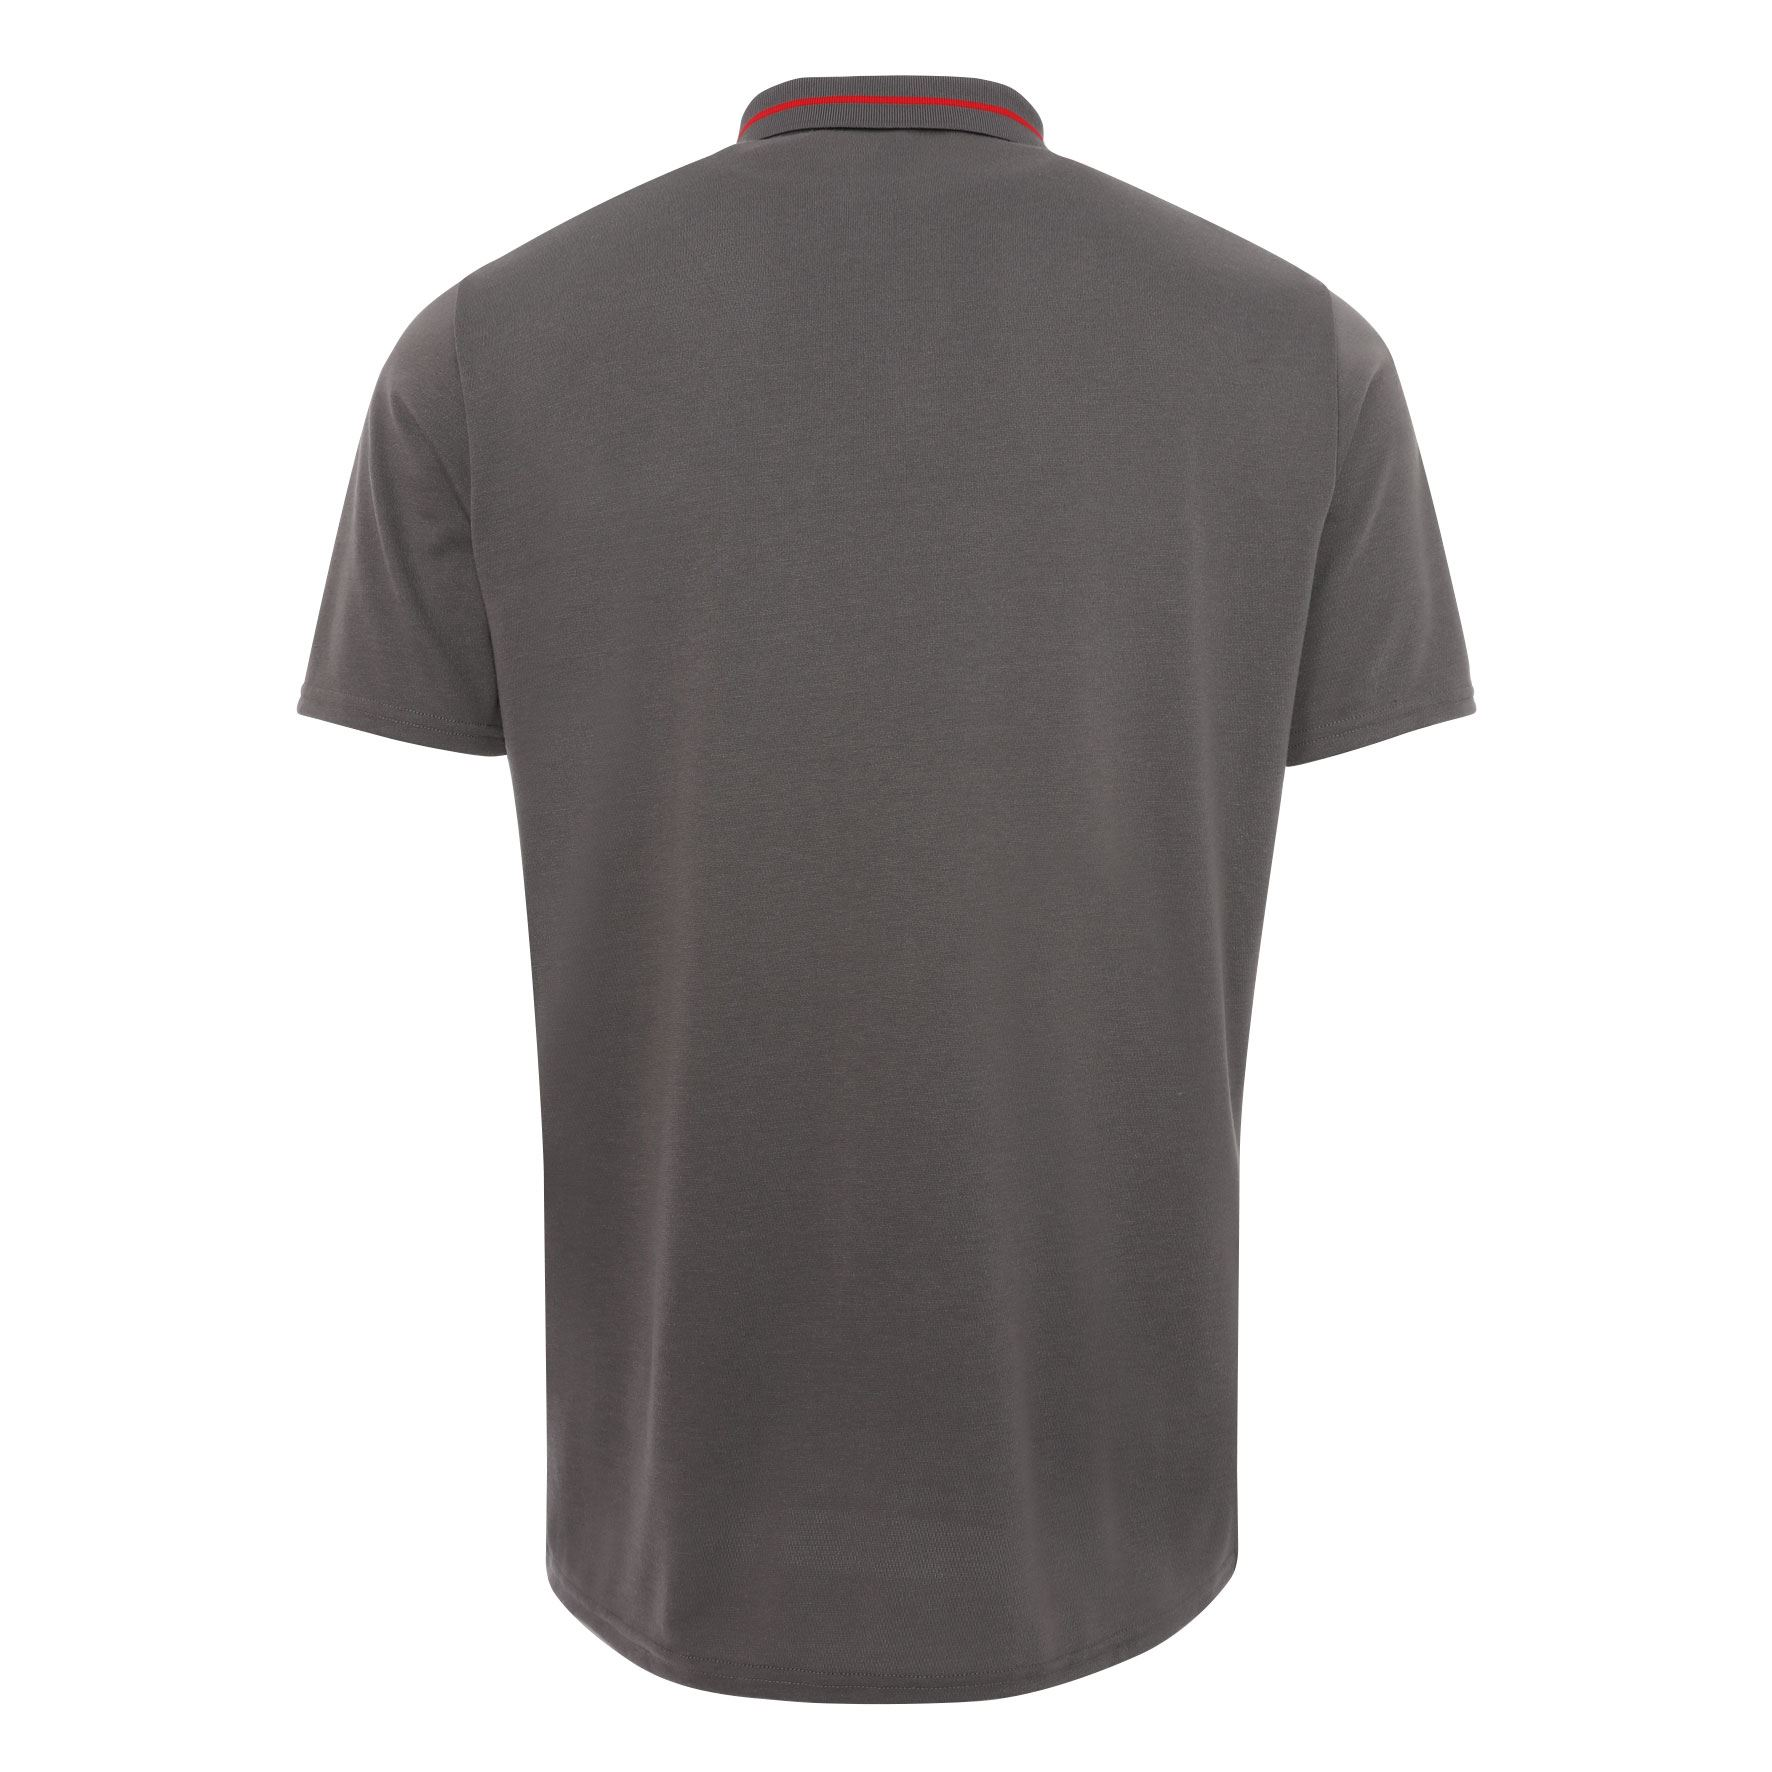 1ad4f933df9 Liverpool FC Grey Mens Football Polo Shirt Leisure Essential 18 19 LFC  Official. £ 35.00. Click on the image below to get zoomed view